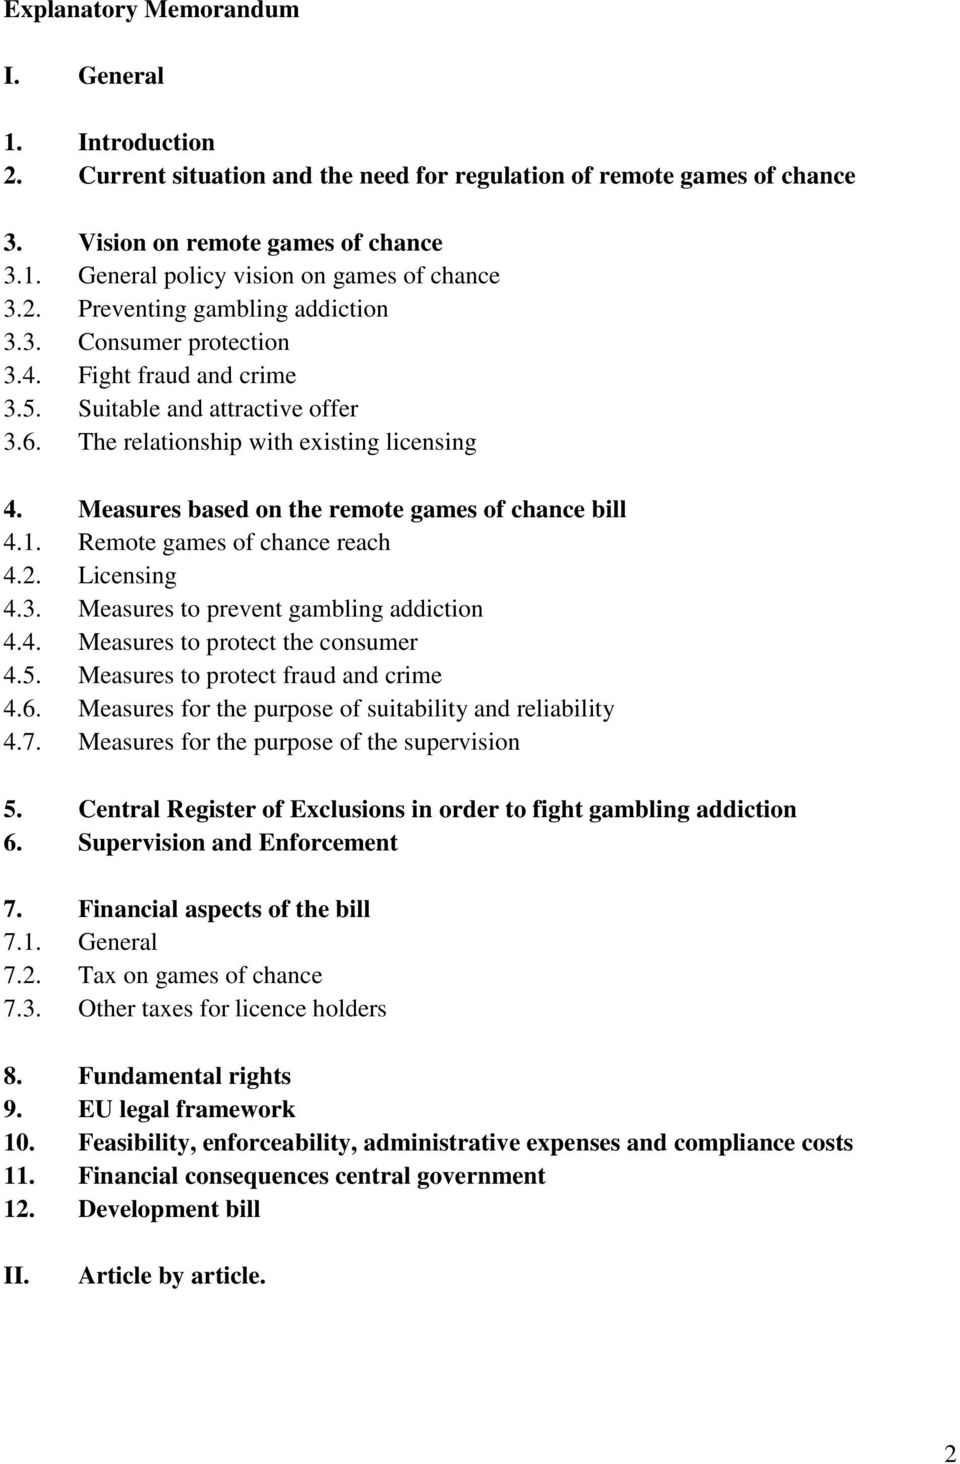 Measures based on the remote games of chance bill 4.1. Remote games of chance reach 4.2. Licensing 4.3. Measures to prevent gambling addiction 4.4. Measures to protect the consumer 4.5.